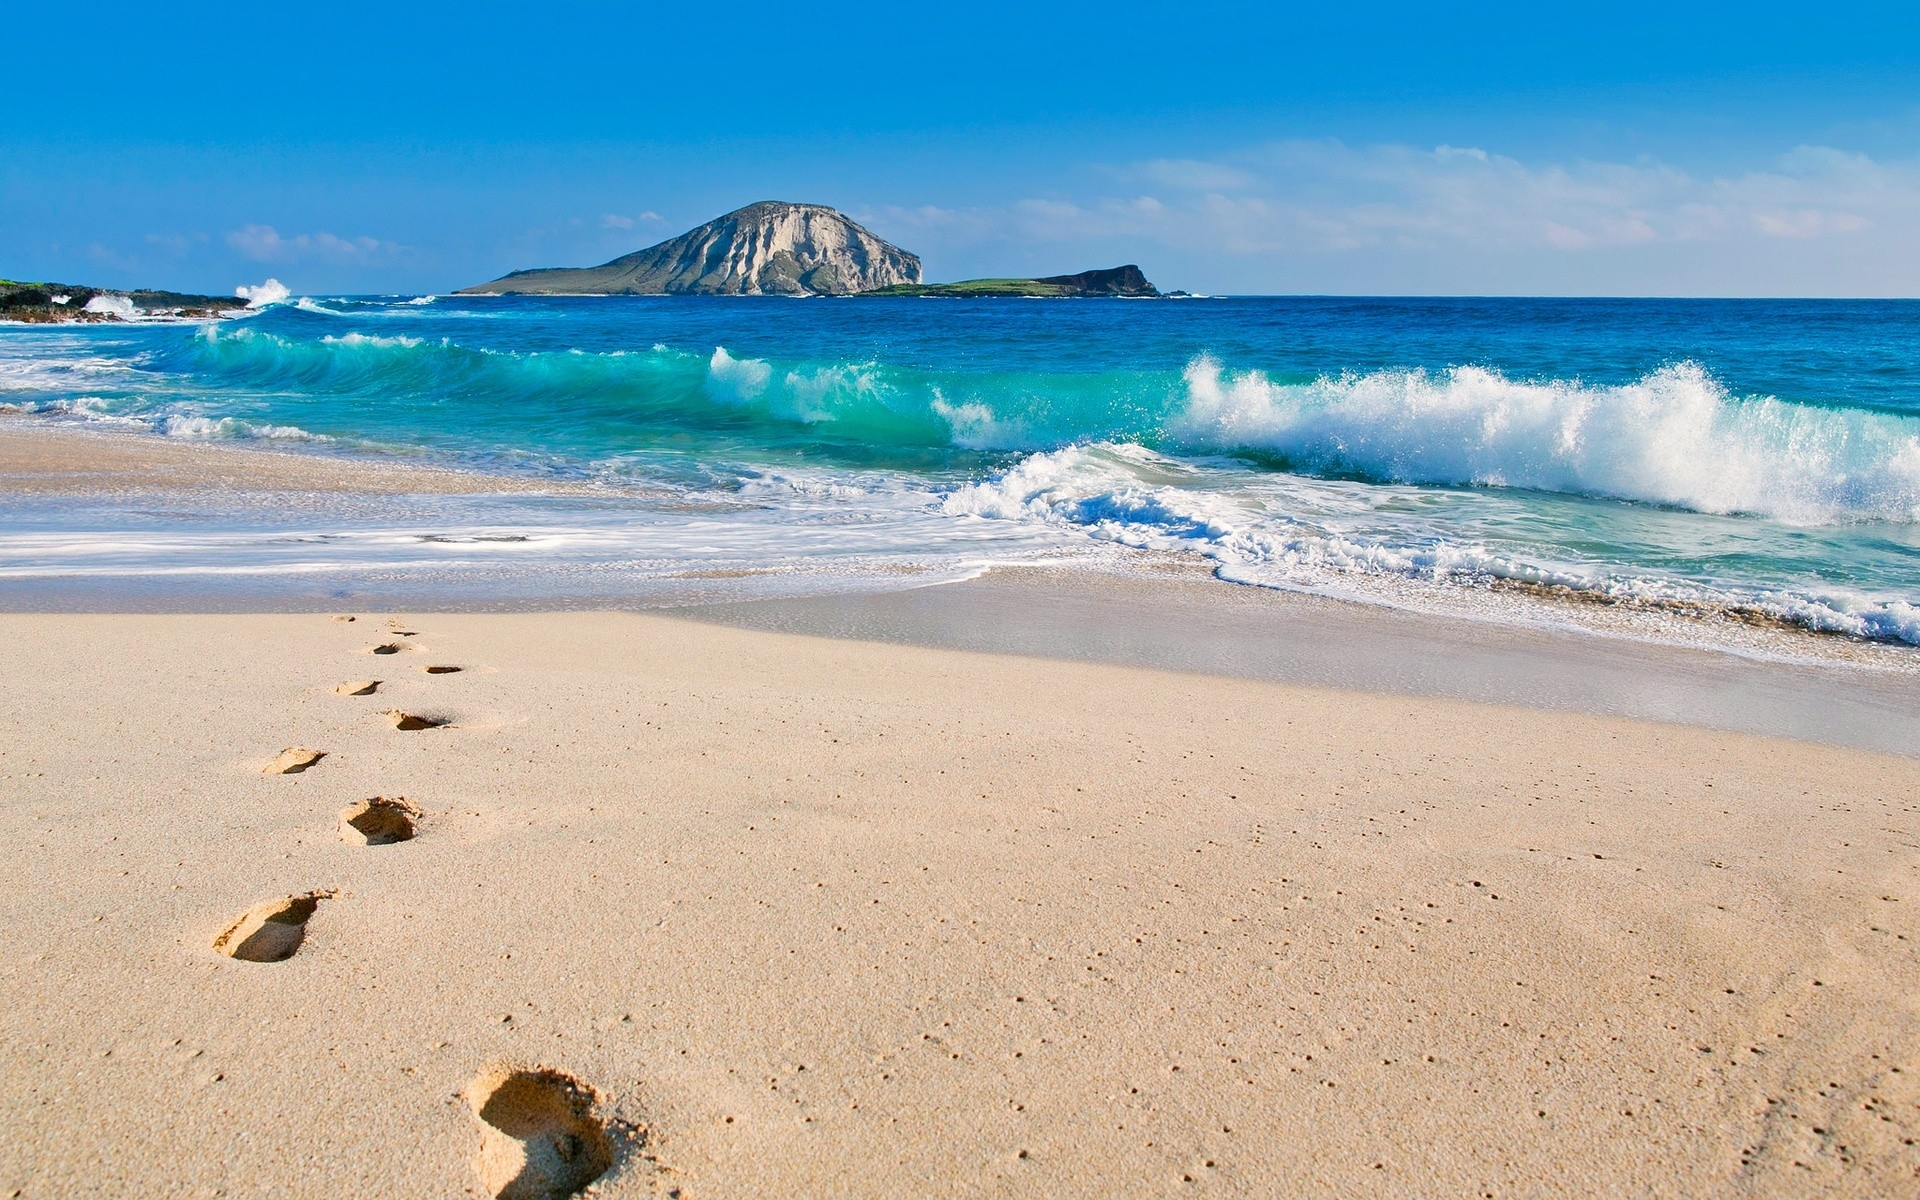 moving beach backgrounds for wallpaper - photo #43